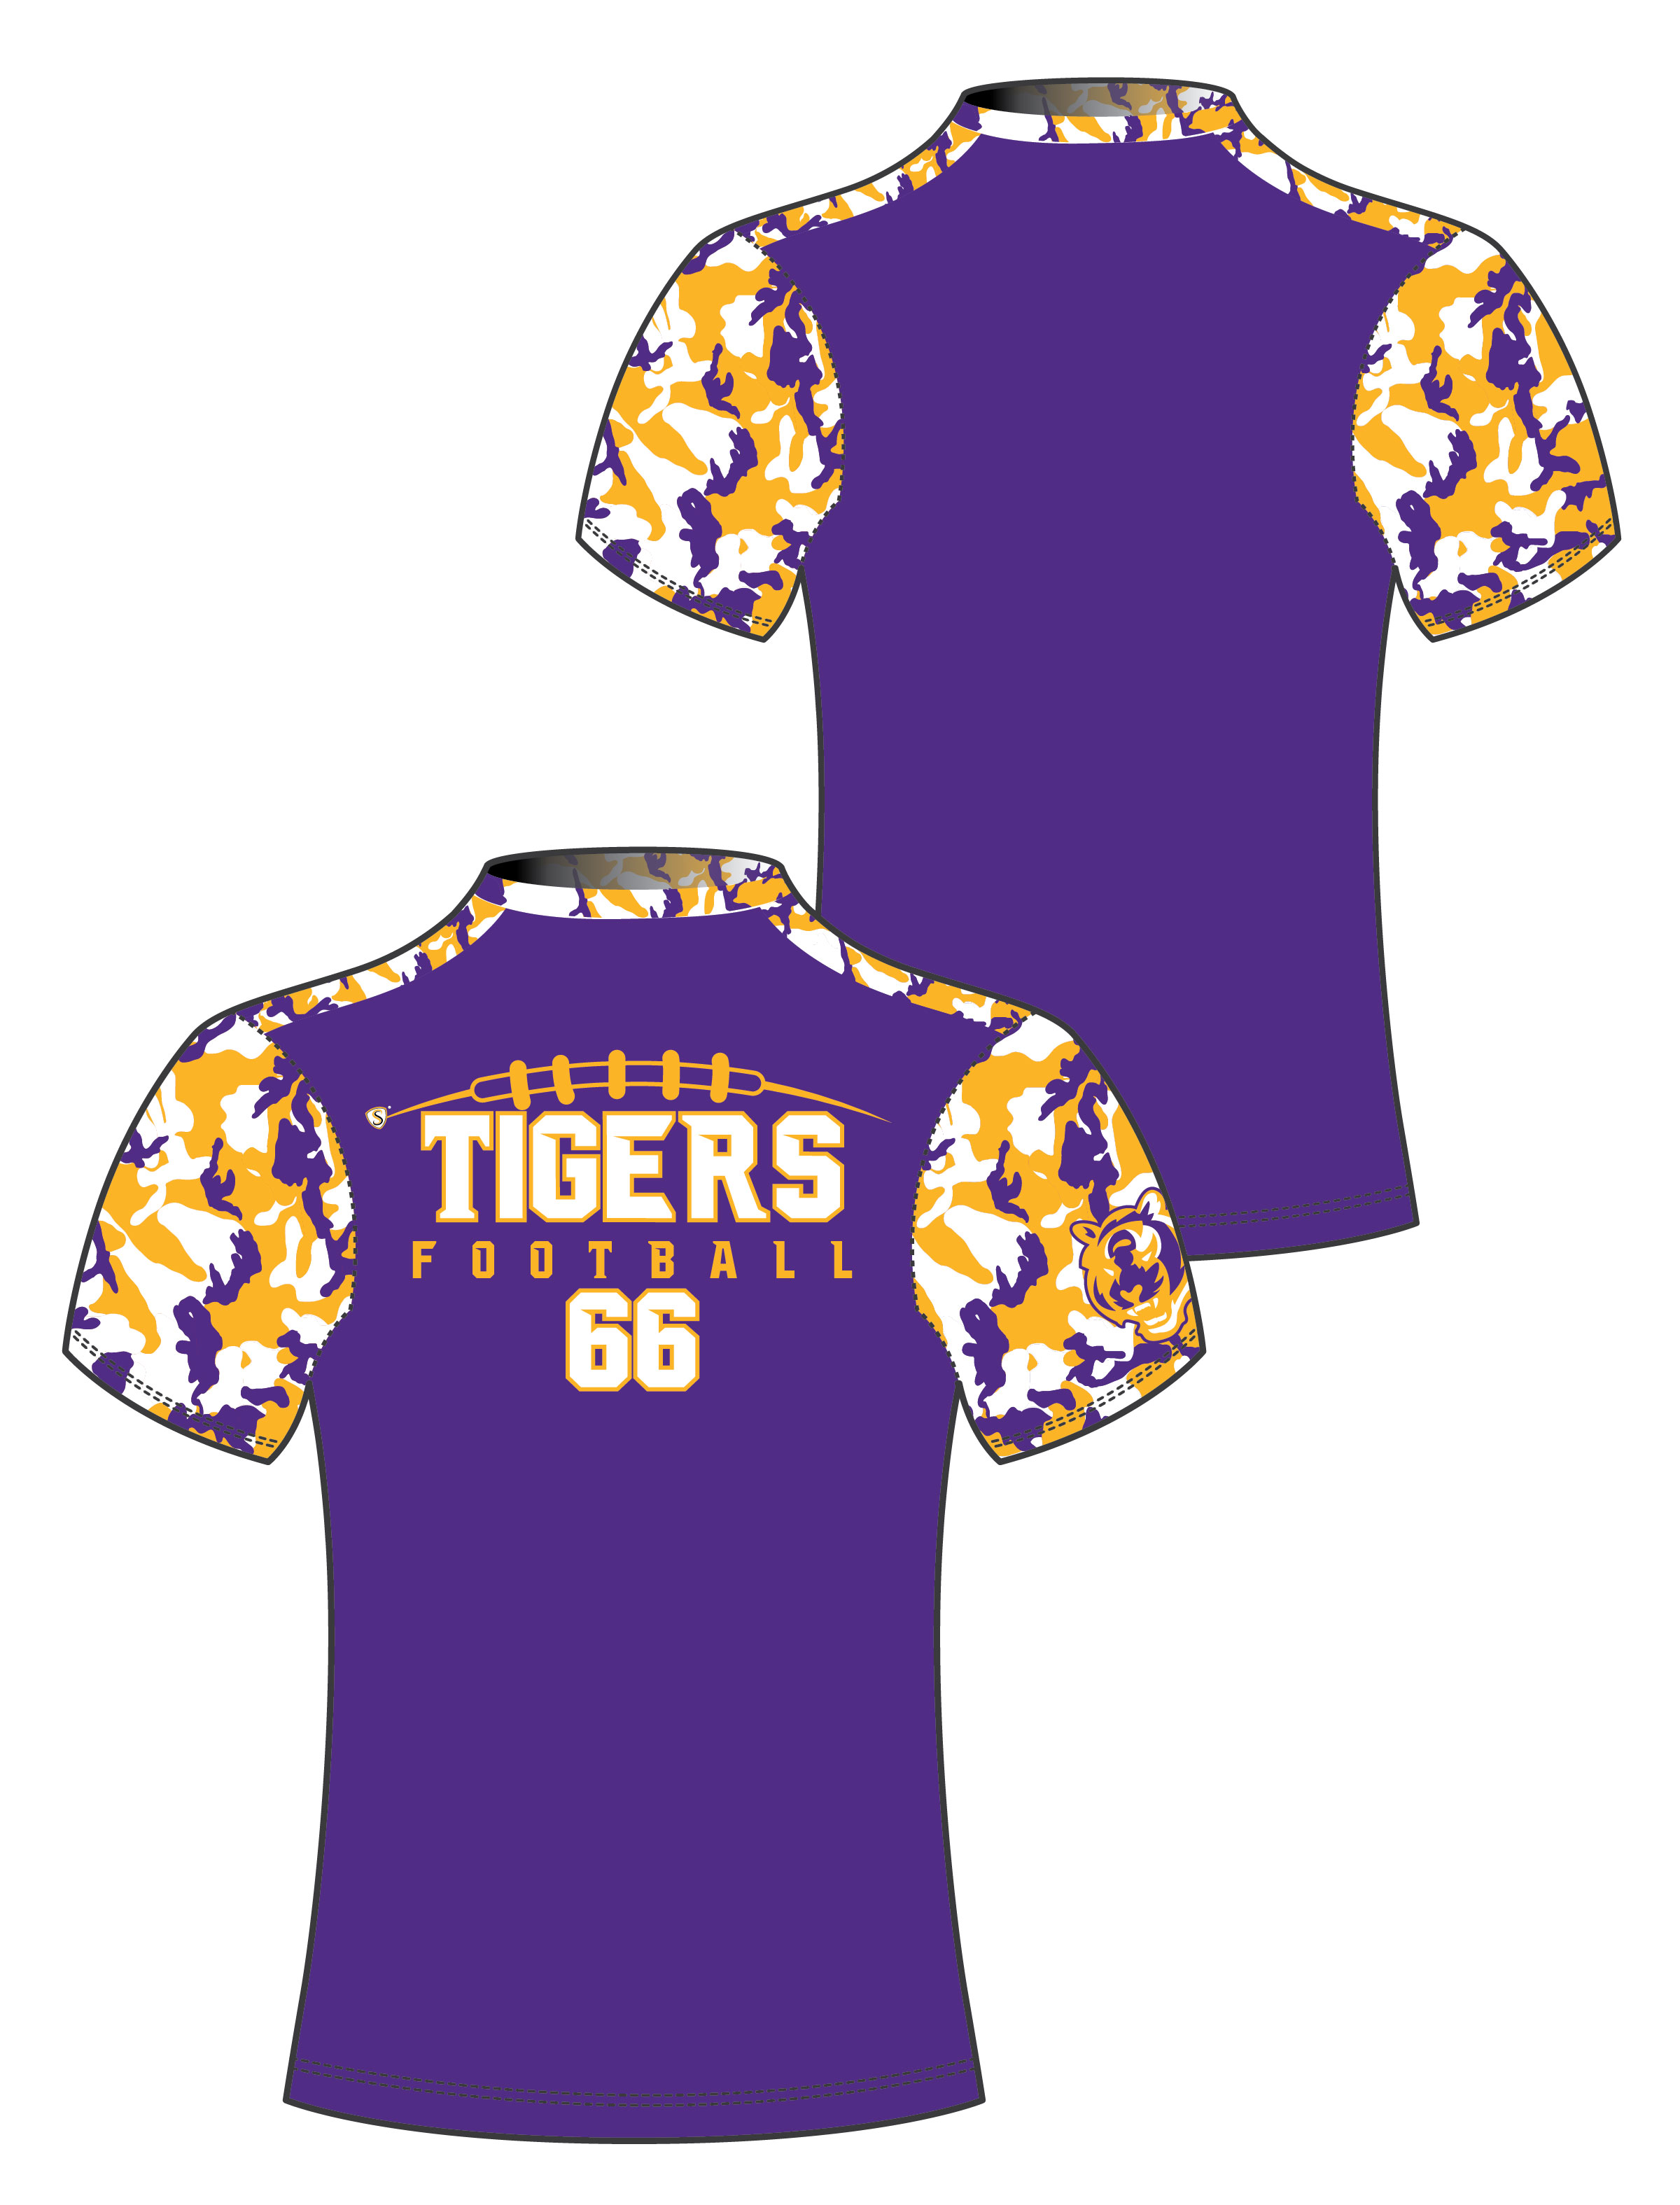 Custom Sublimated Compression Shirt - Tigers 2